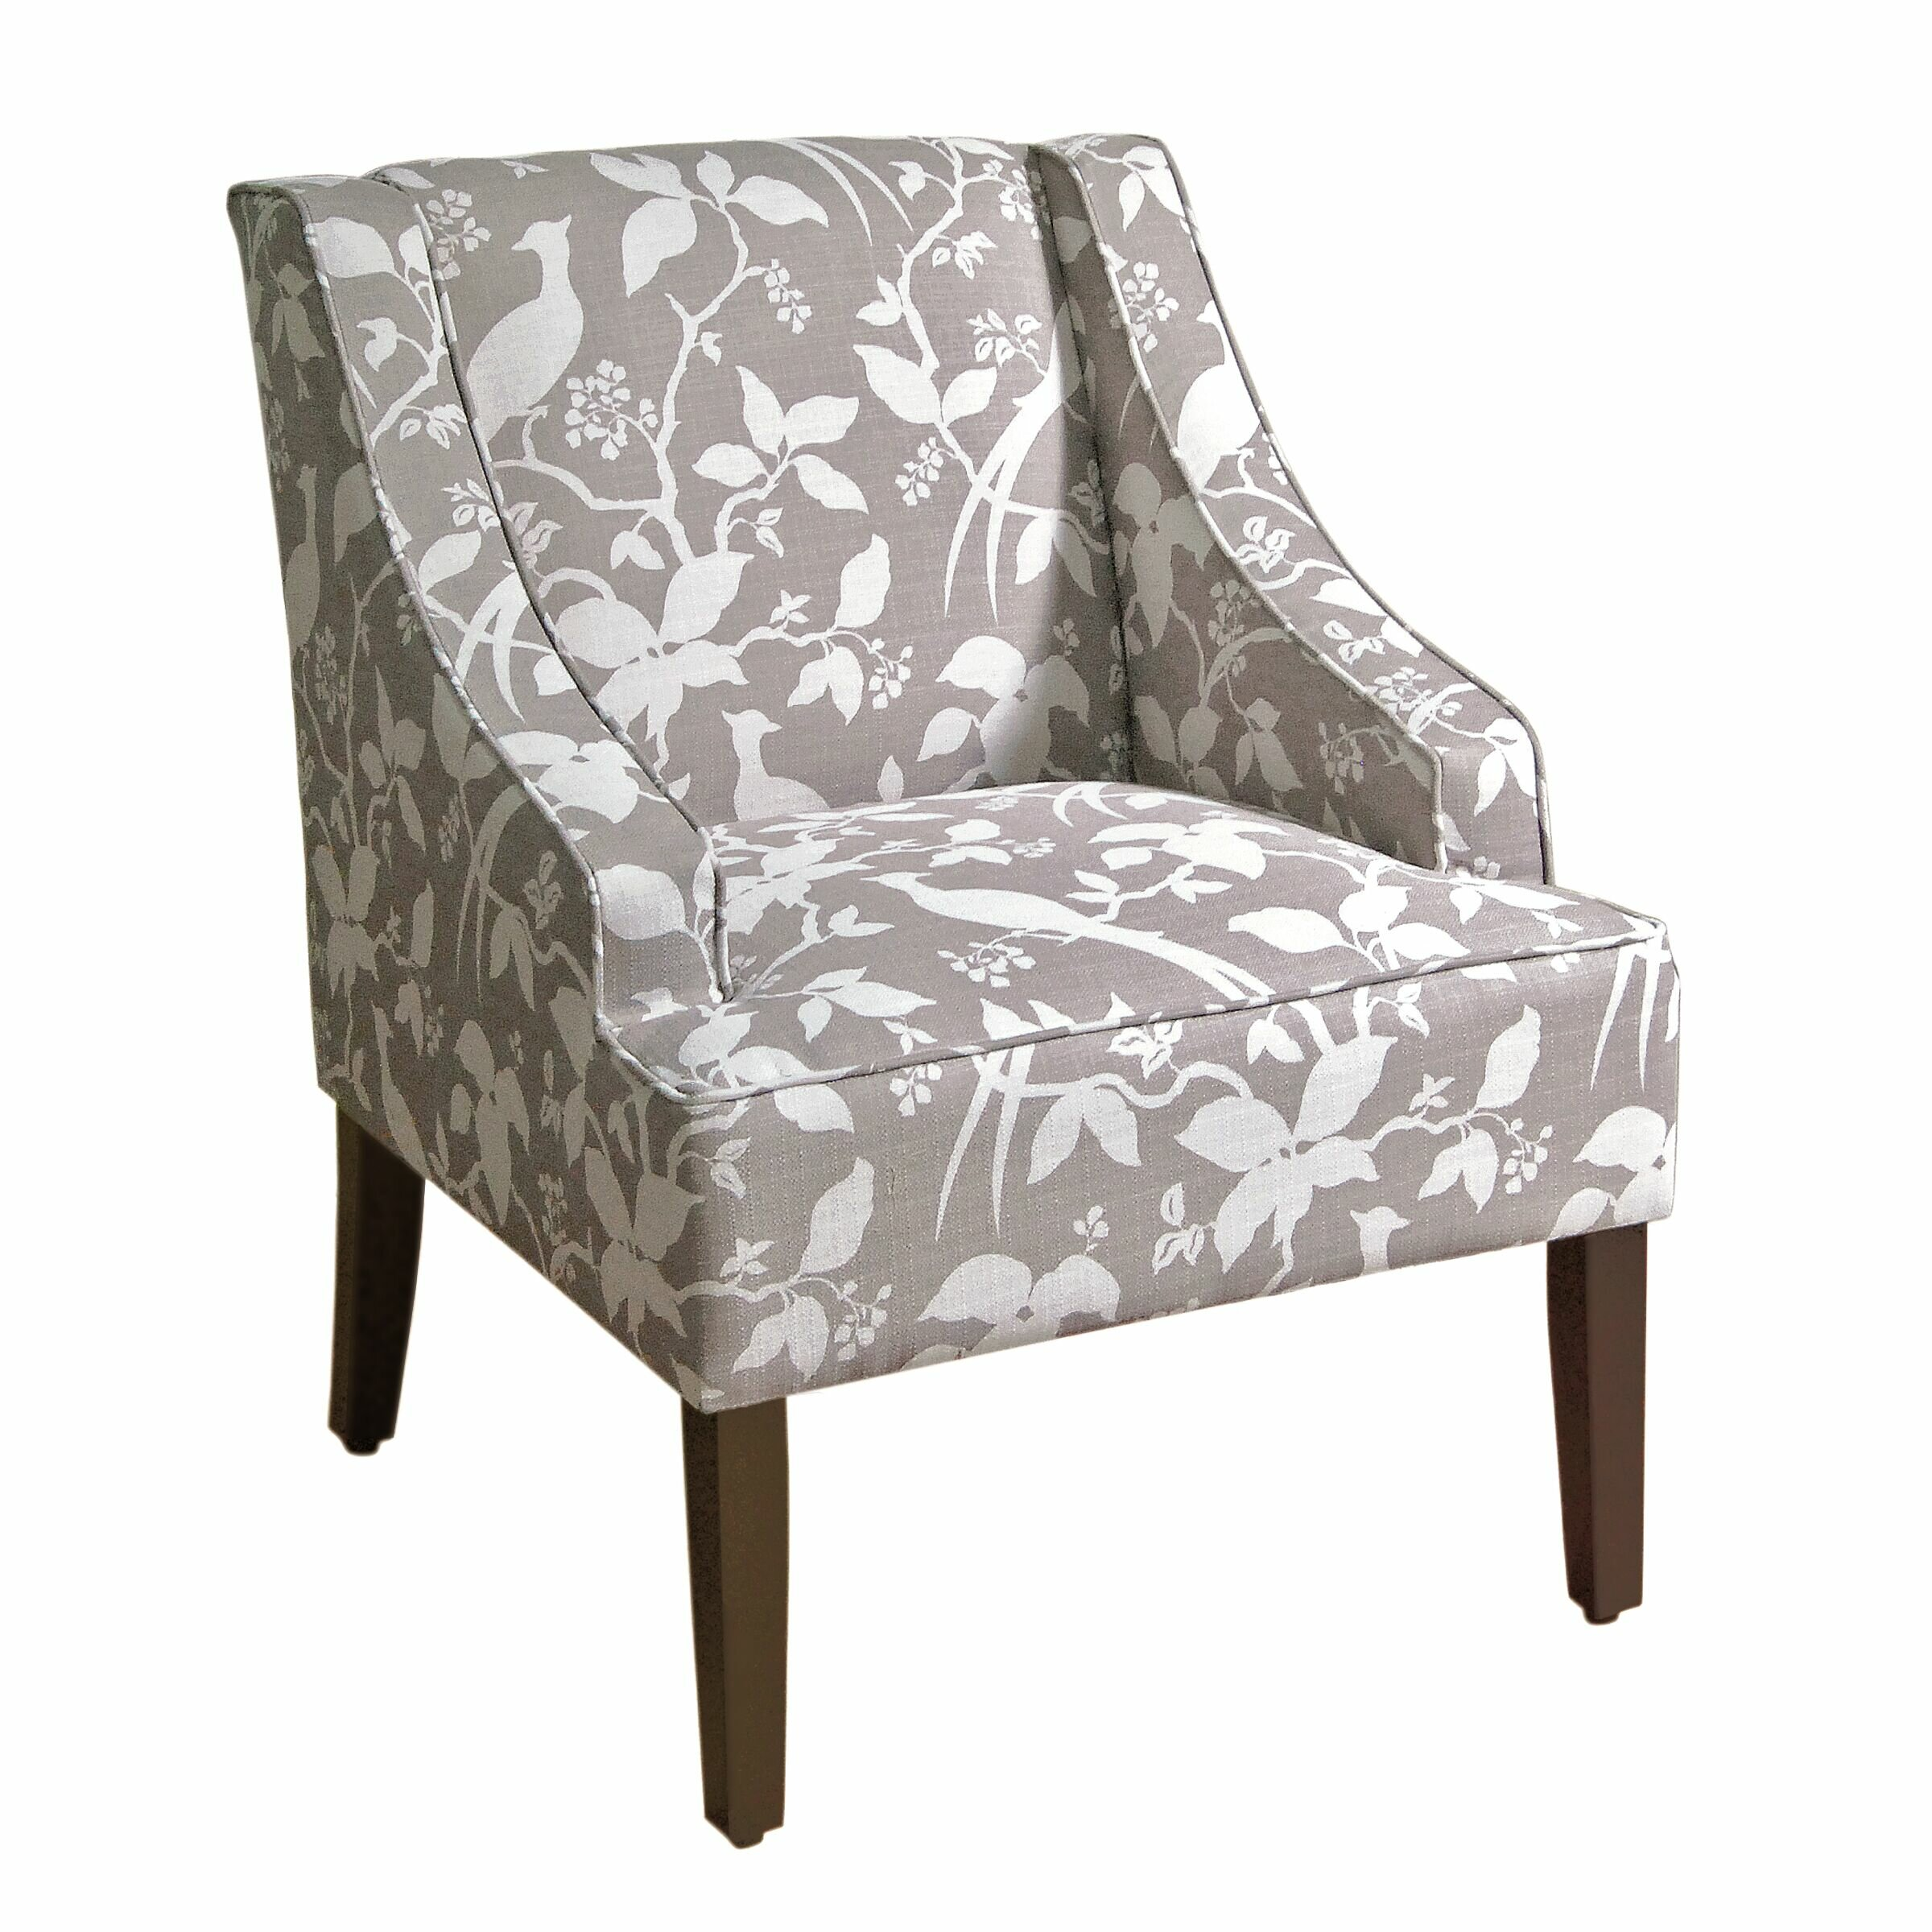 Laurel foundry modern farmhouse annette accent arm chair for Accent furniture